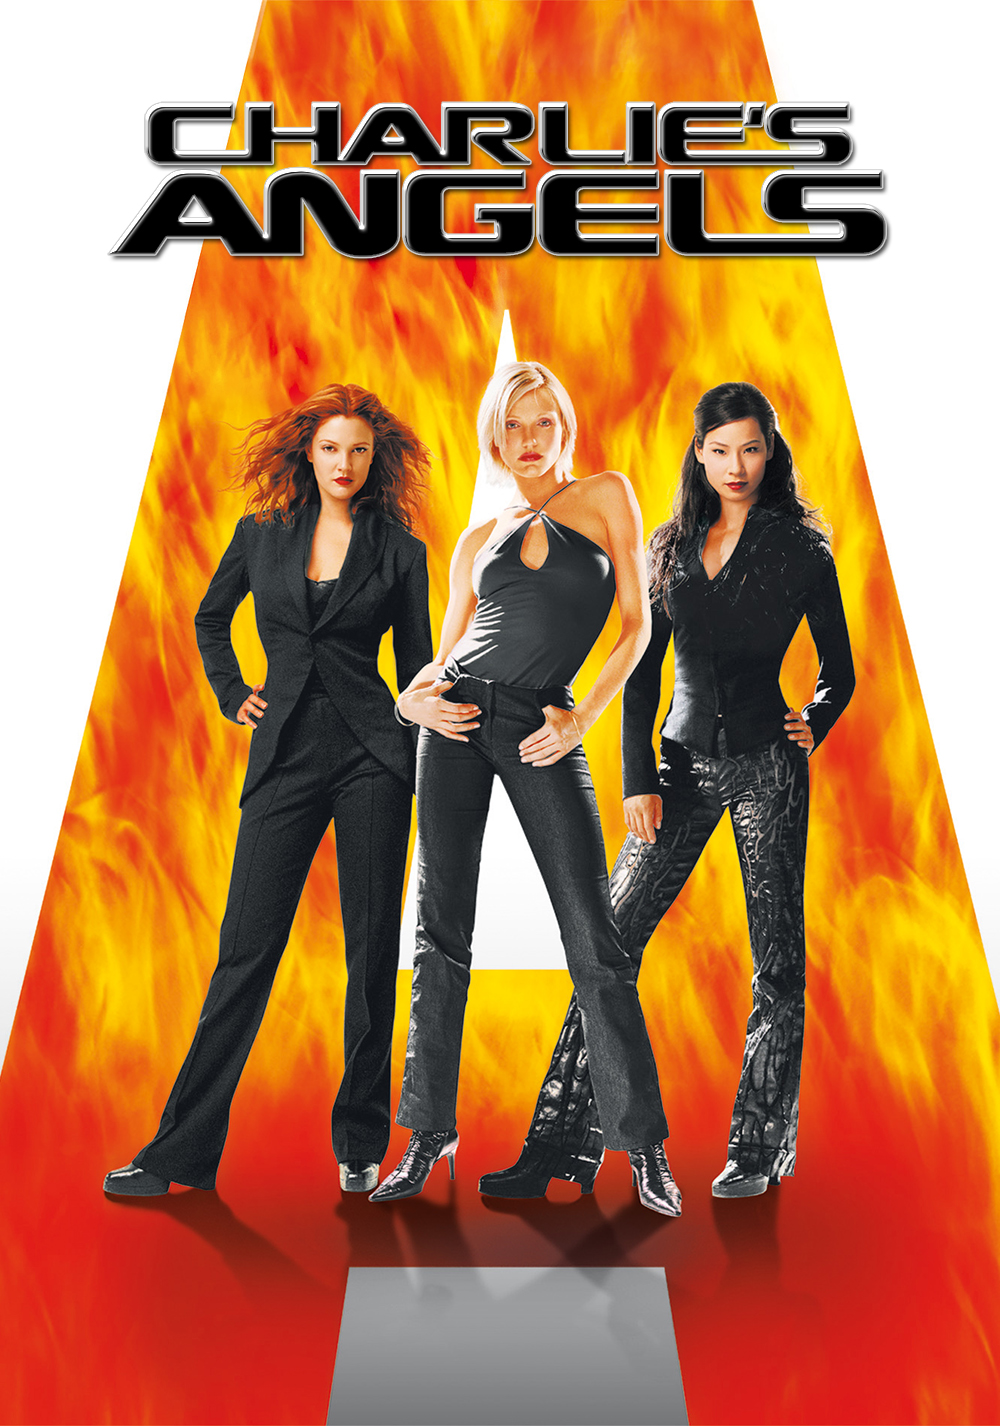 CHARLIES ANGELS (2000) MOVIE TAMIL DUBBED HD